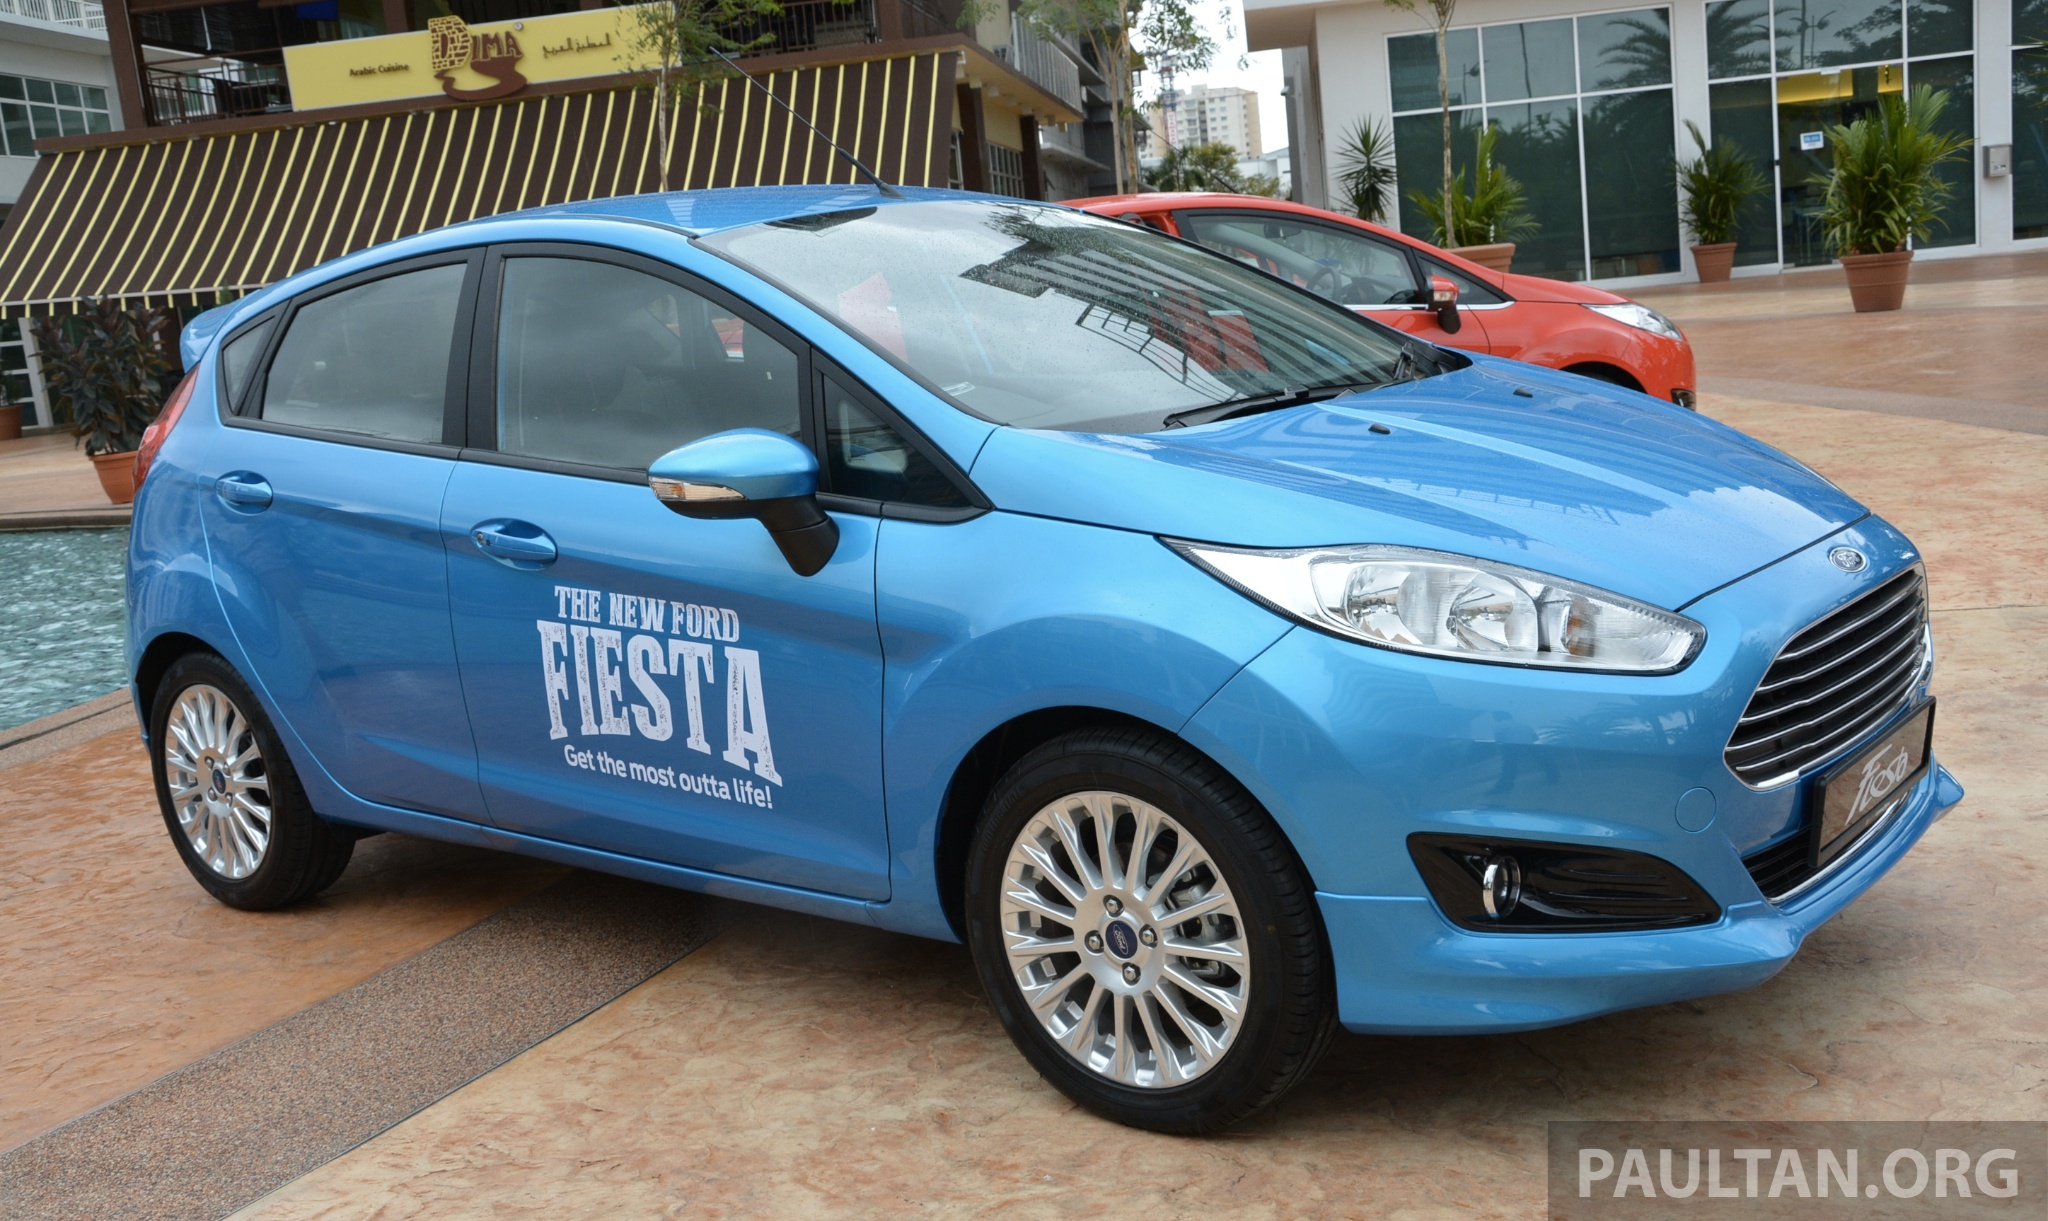 DRIVEN: Ford Fiesta facelift – 1.5 Ti-VCT sampled Paul Tan - Image 198157